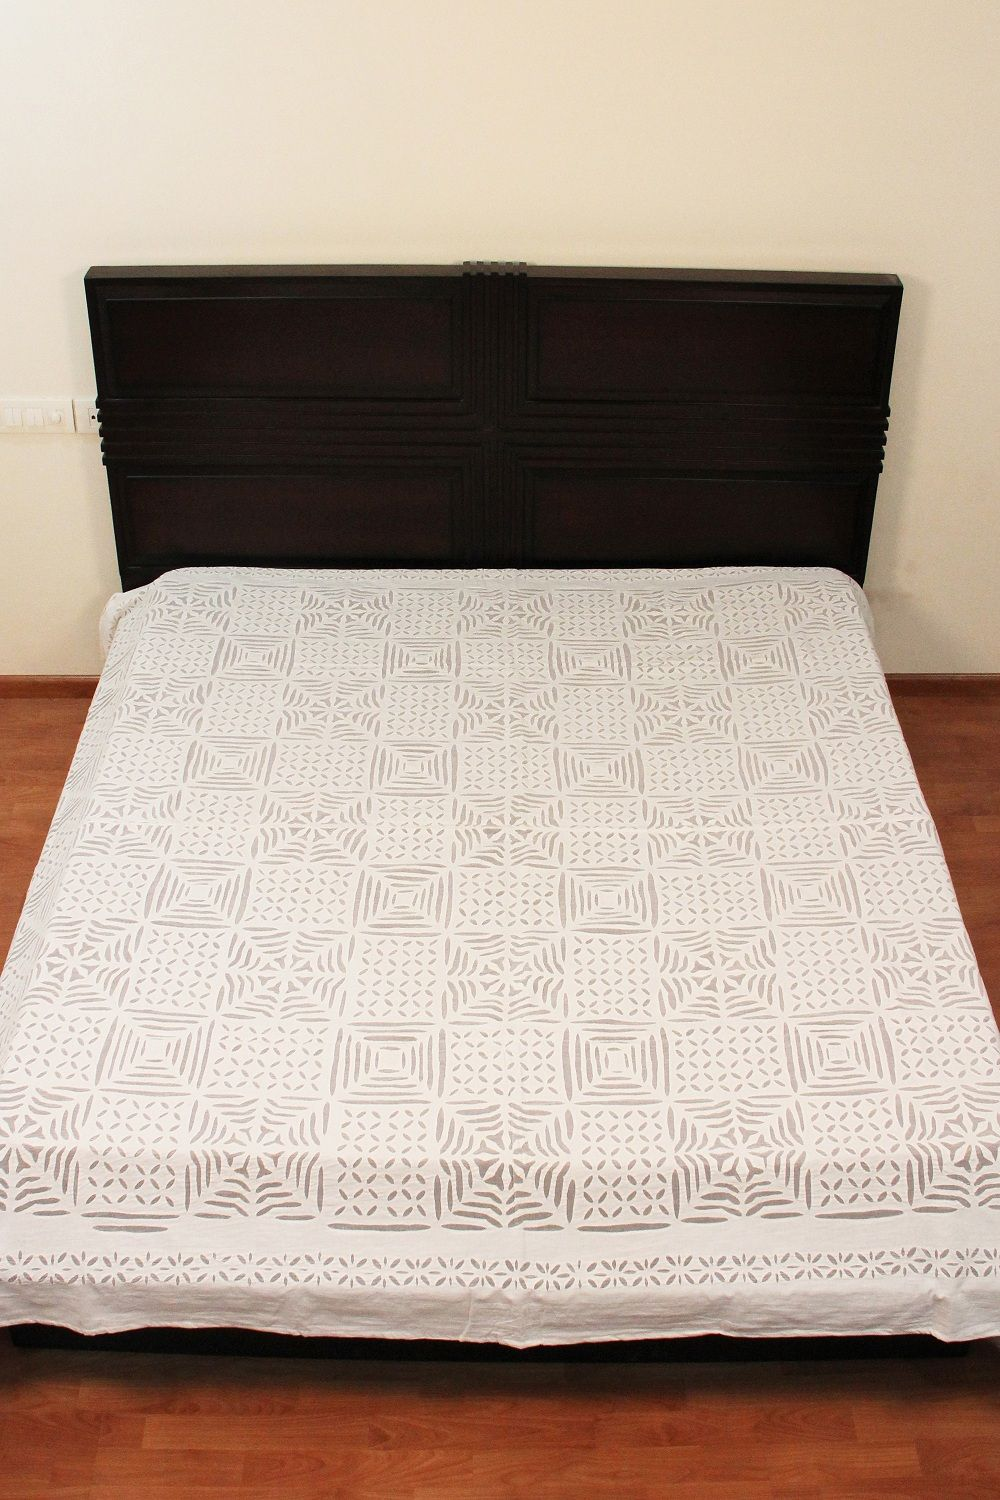 Handmade bed sheets design - Delicate Applique Cut Indian Handmade White Organdy Bedspread Ethnic Designer Double Size Bed Cover Sophisticated Work